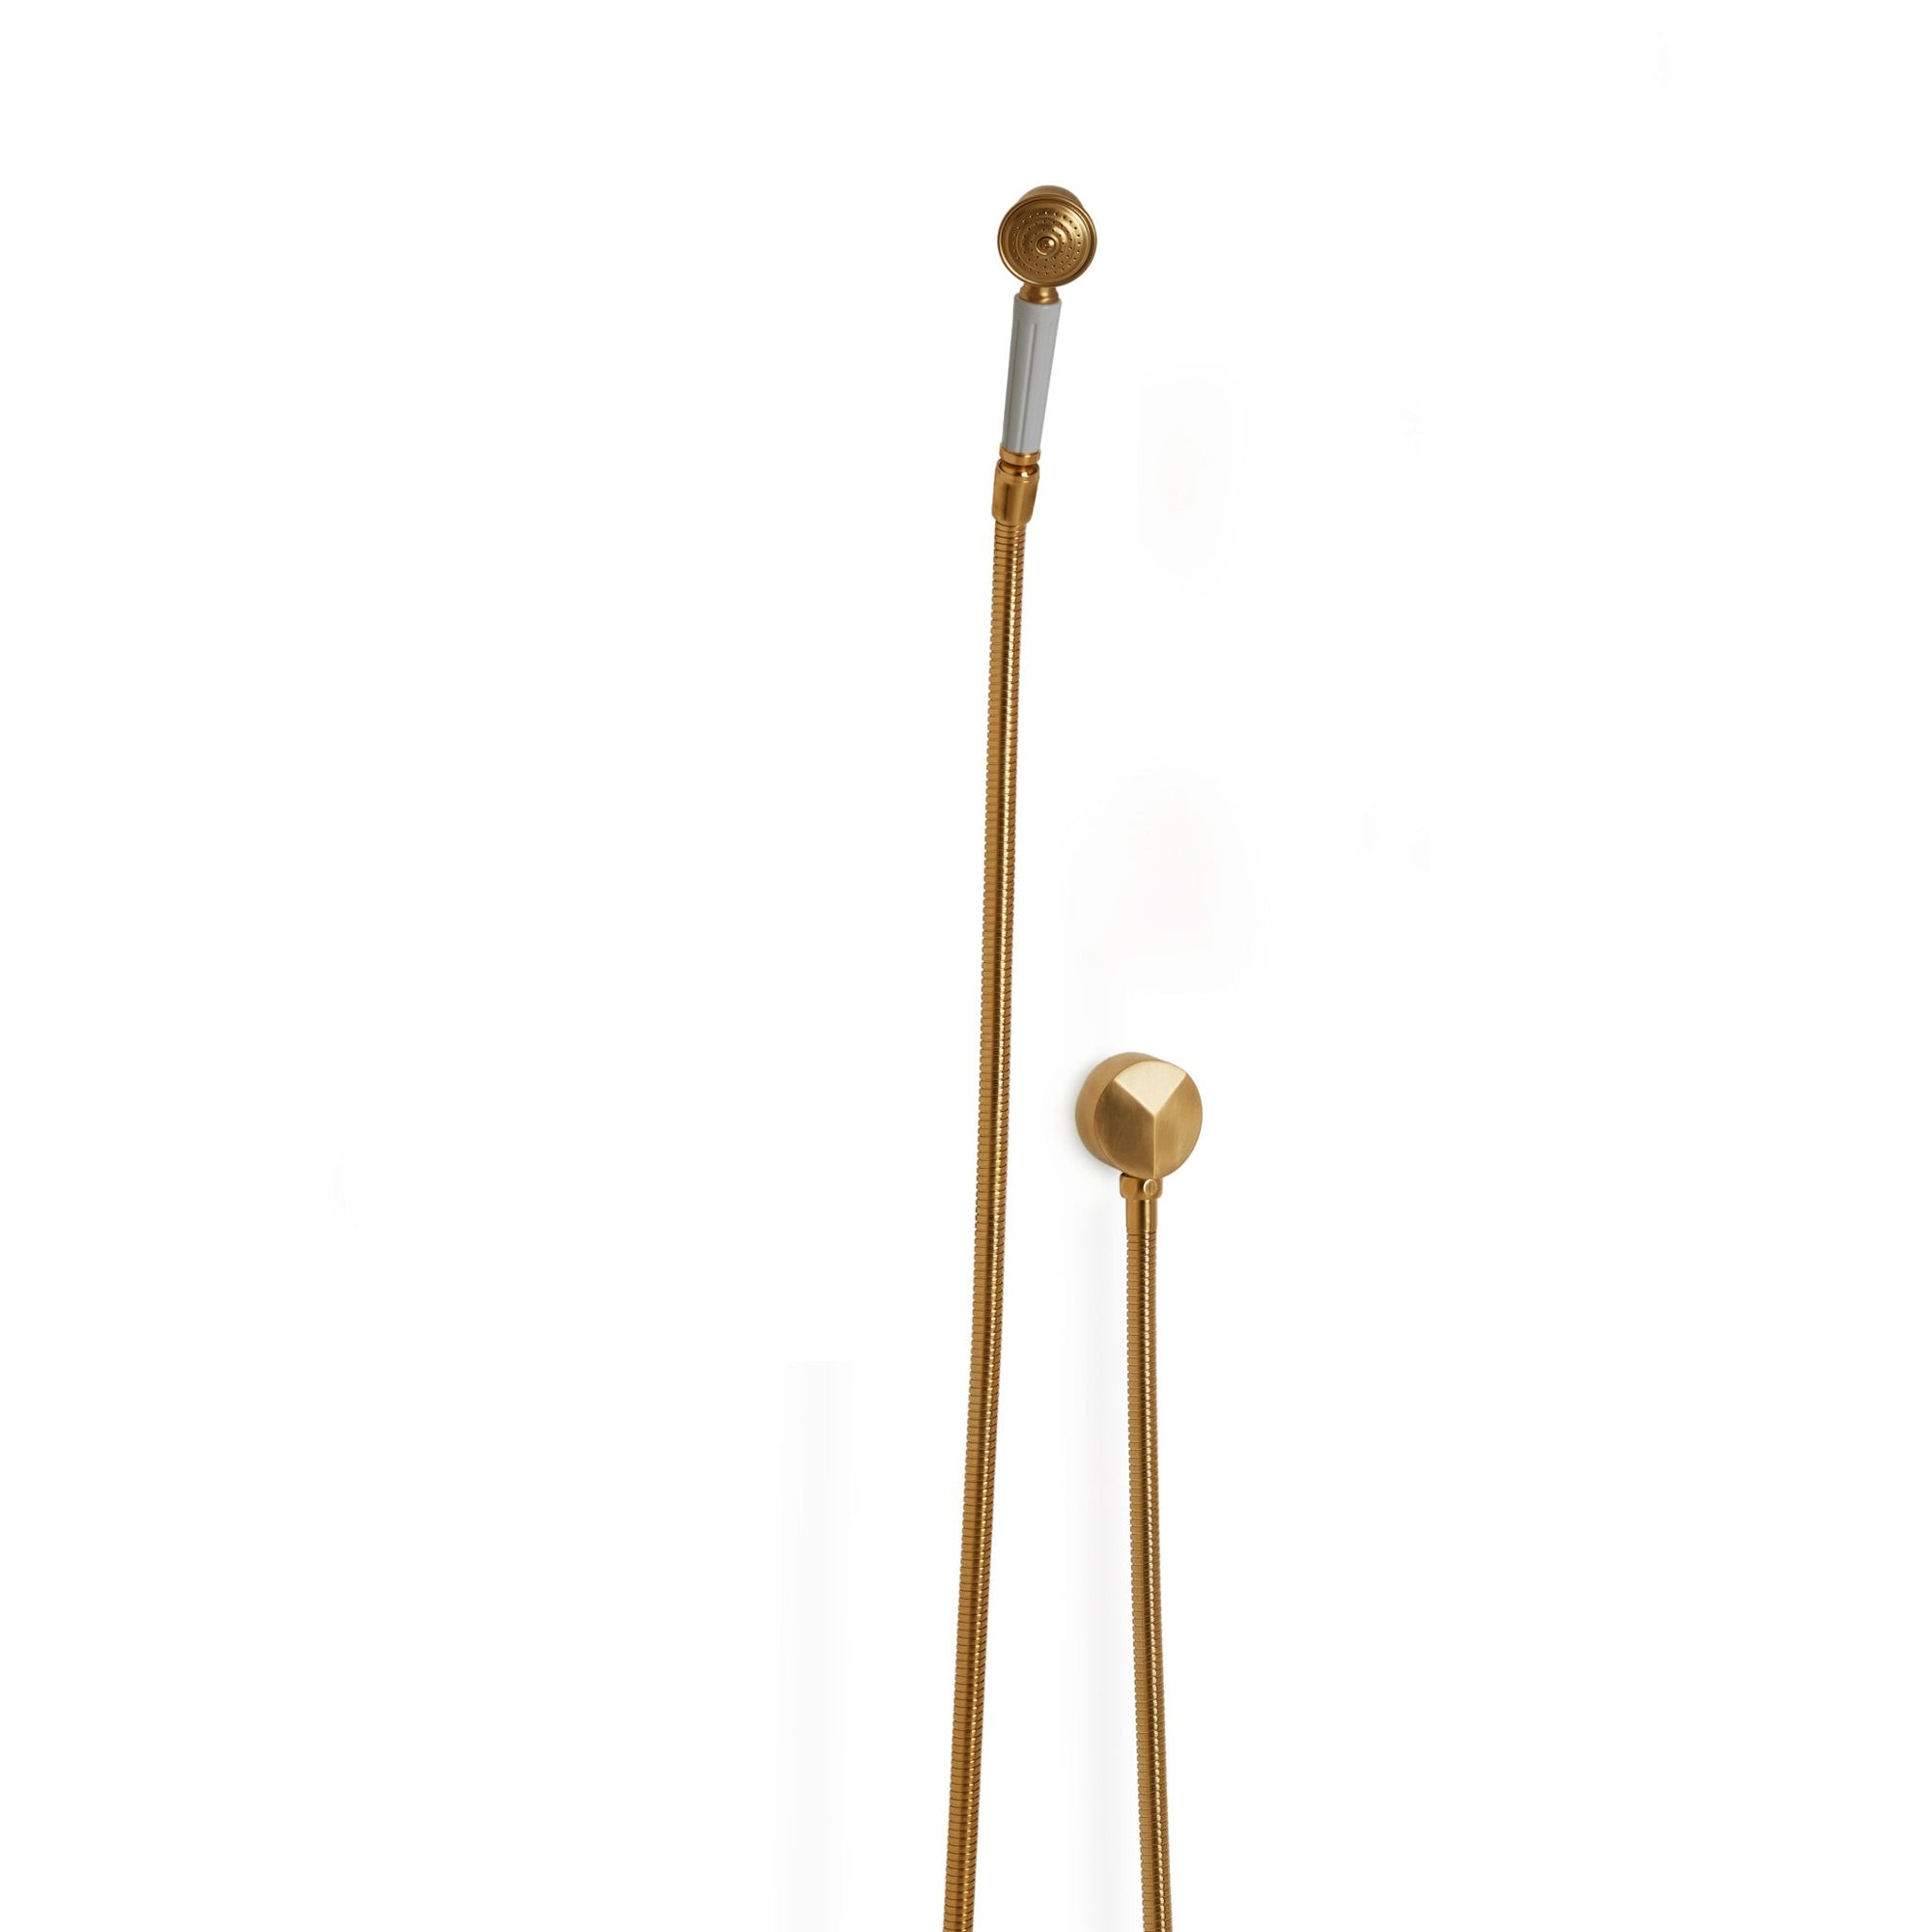 0839SPLY-GP Sherle Wagner International Fluted Hand Shower with Hose and 90 Degree Supply in Gold Plate metal finish